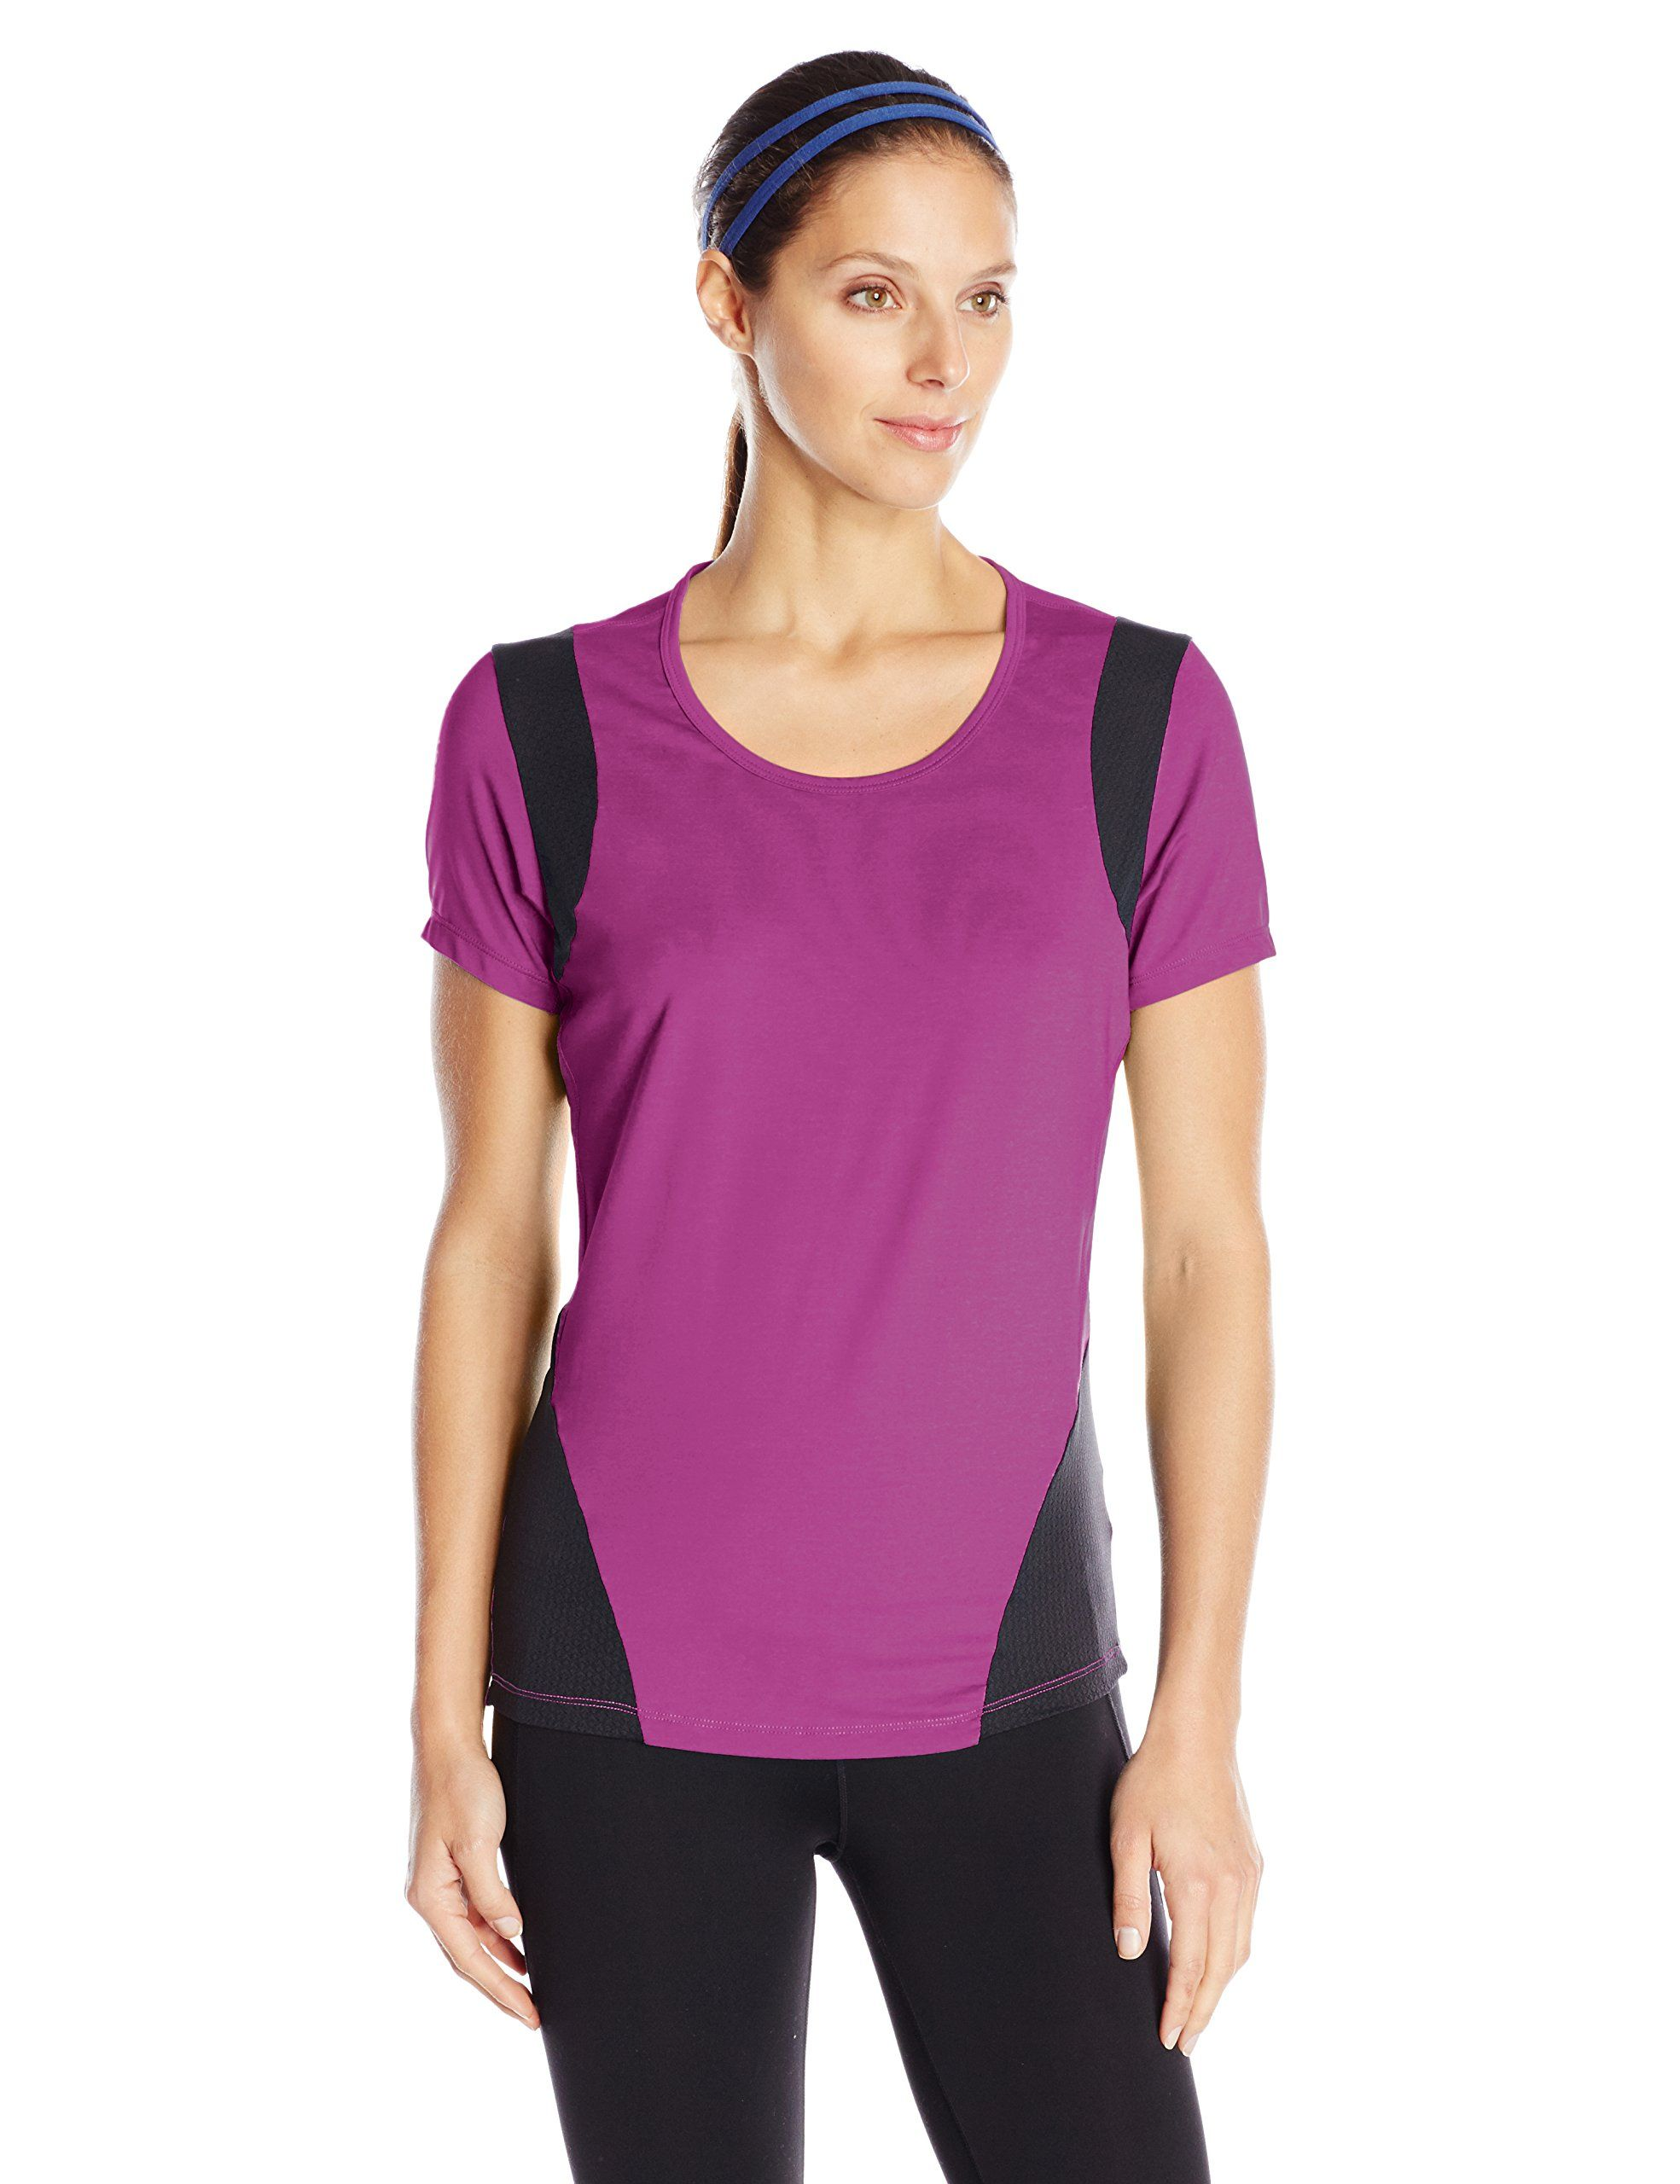 Skirt Sports Women's Peek-A-Boo Tee, Razz, Large. Mesh paneling: 88% nylon/12% spandex open mesh. Semi-fitted. Mesh paneling for ventilation. Wide scoop neck. Slimming design lines.